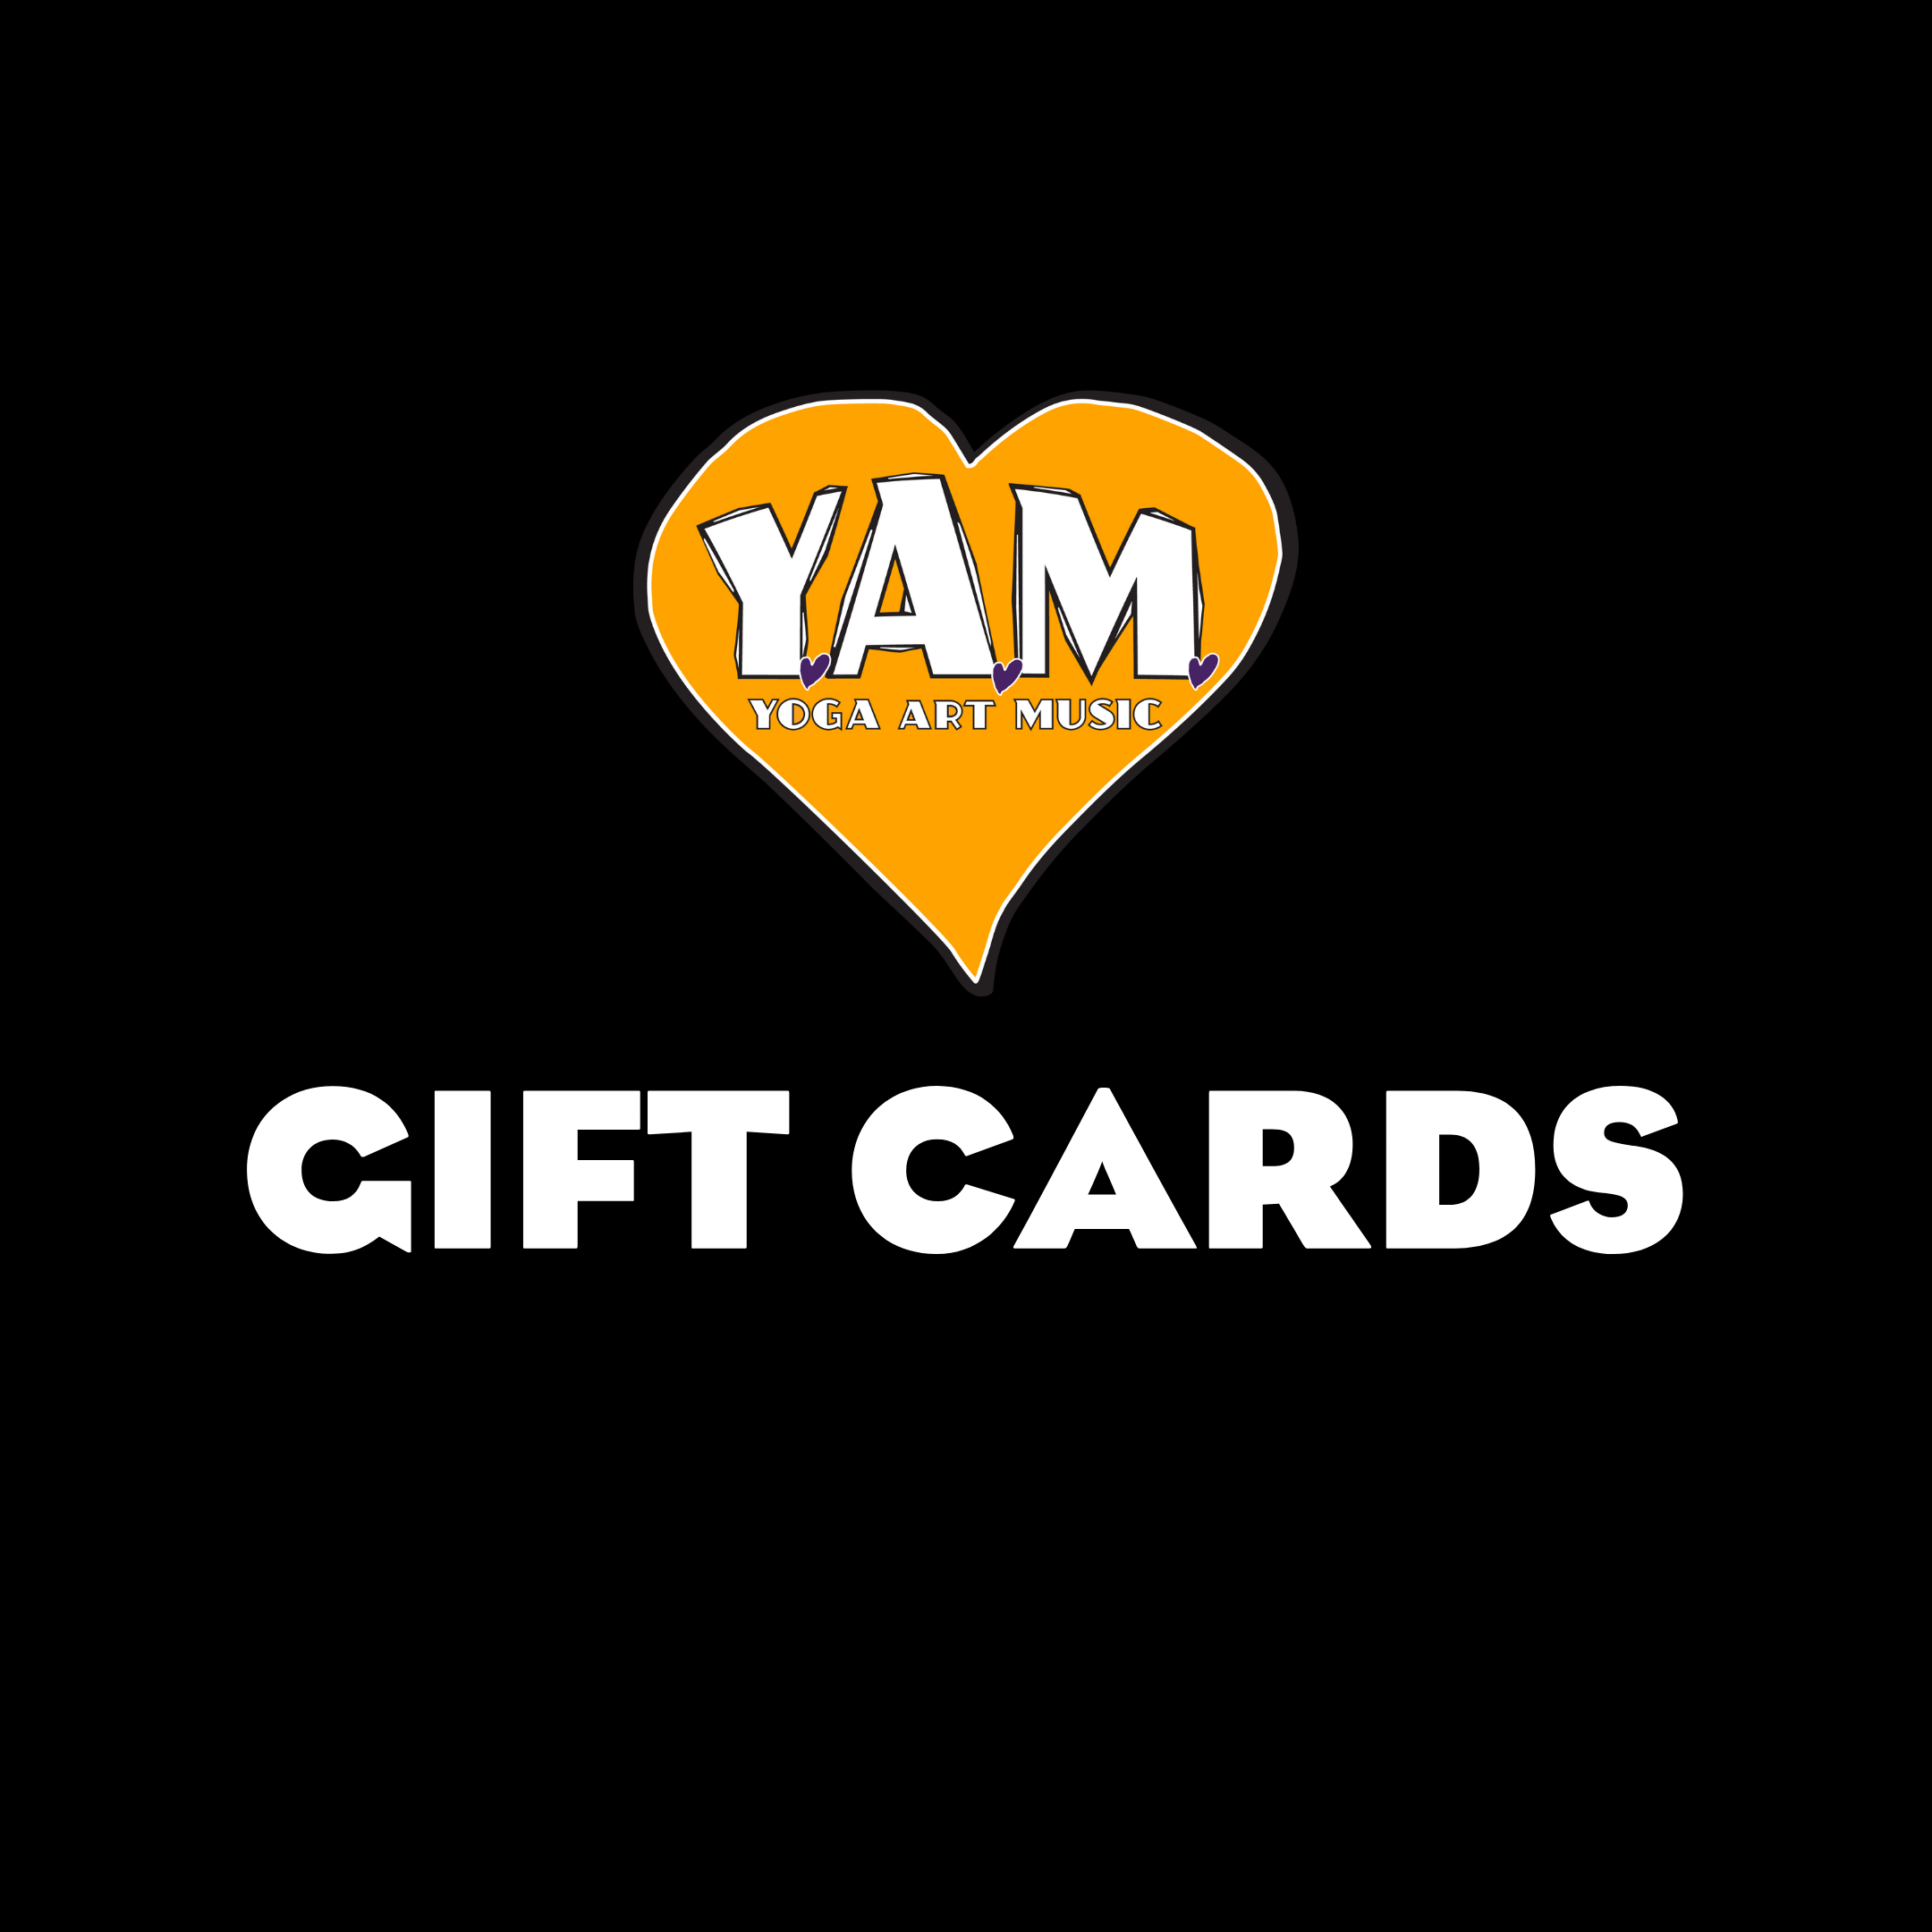 YAM Gift Cards